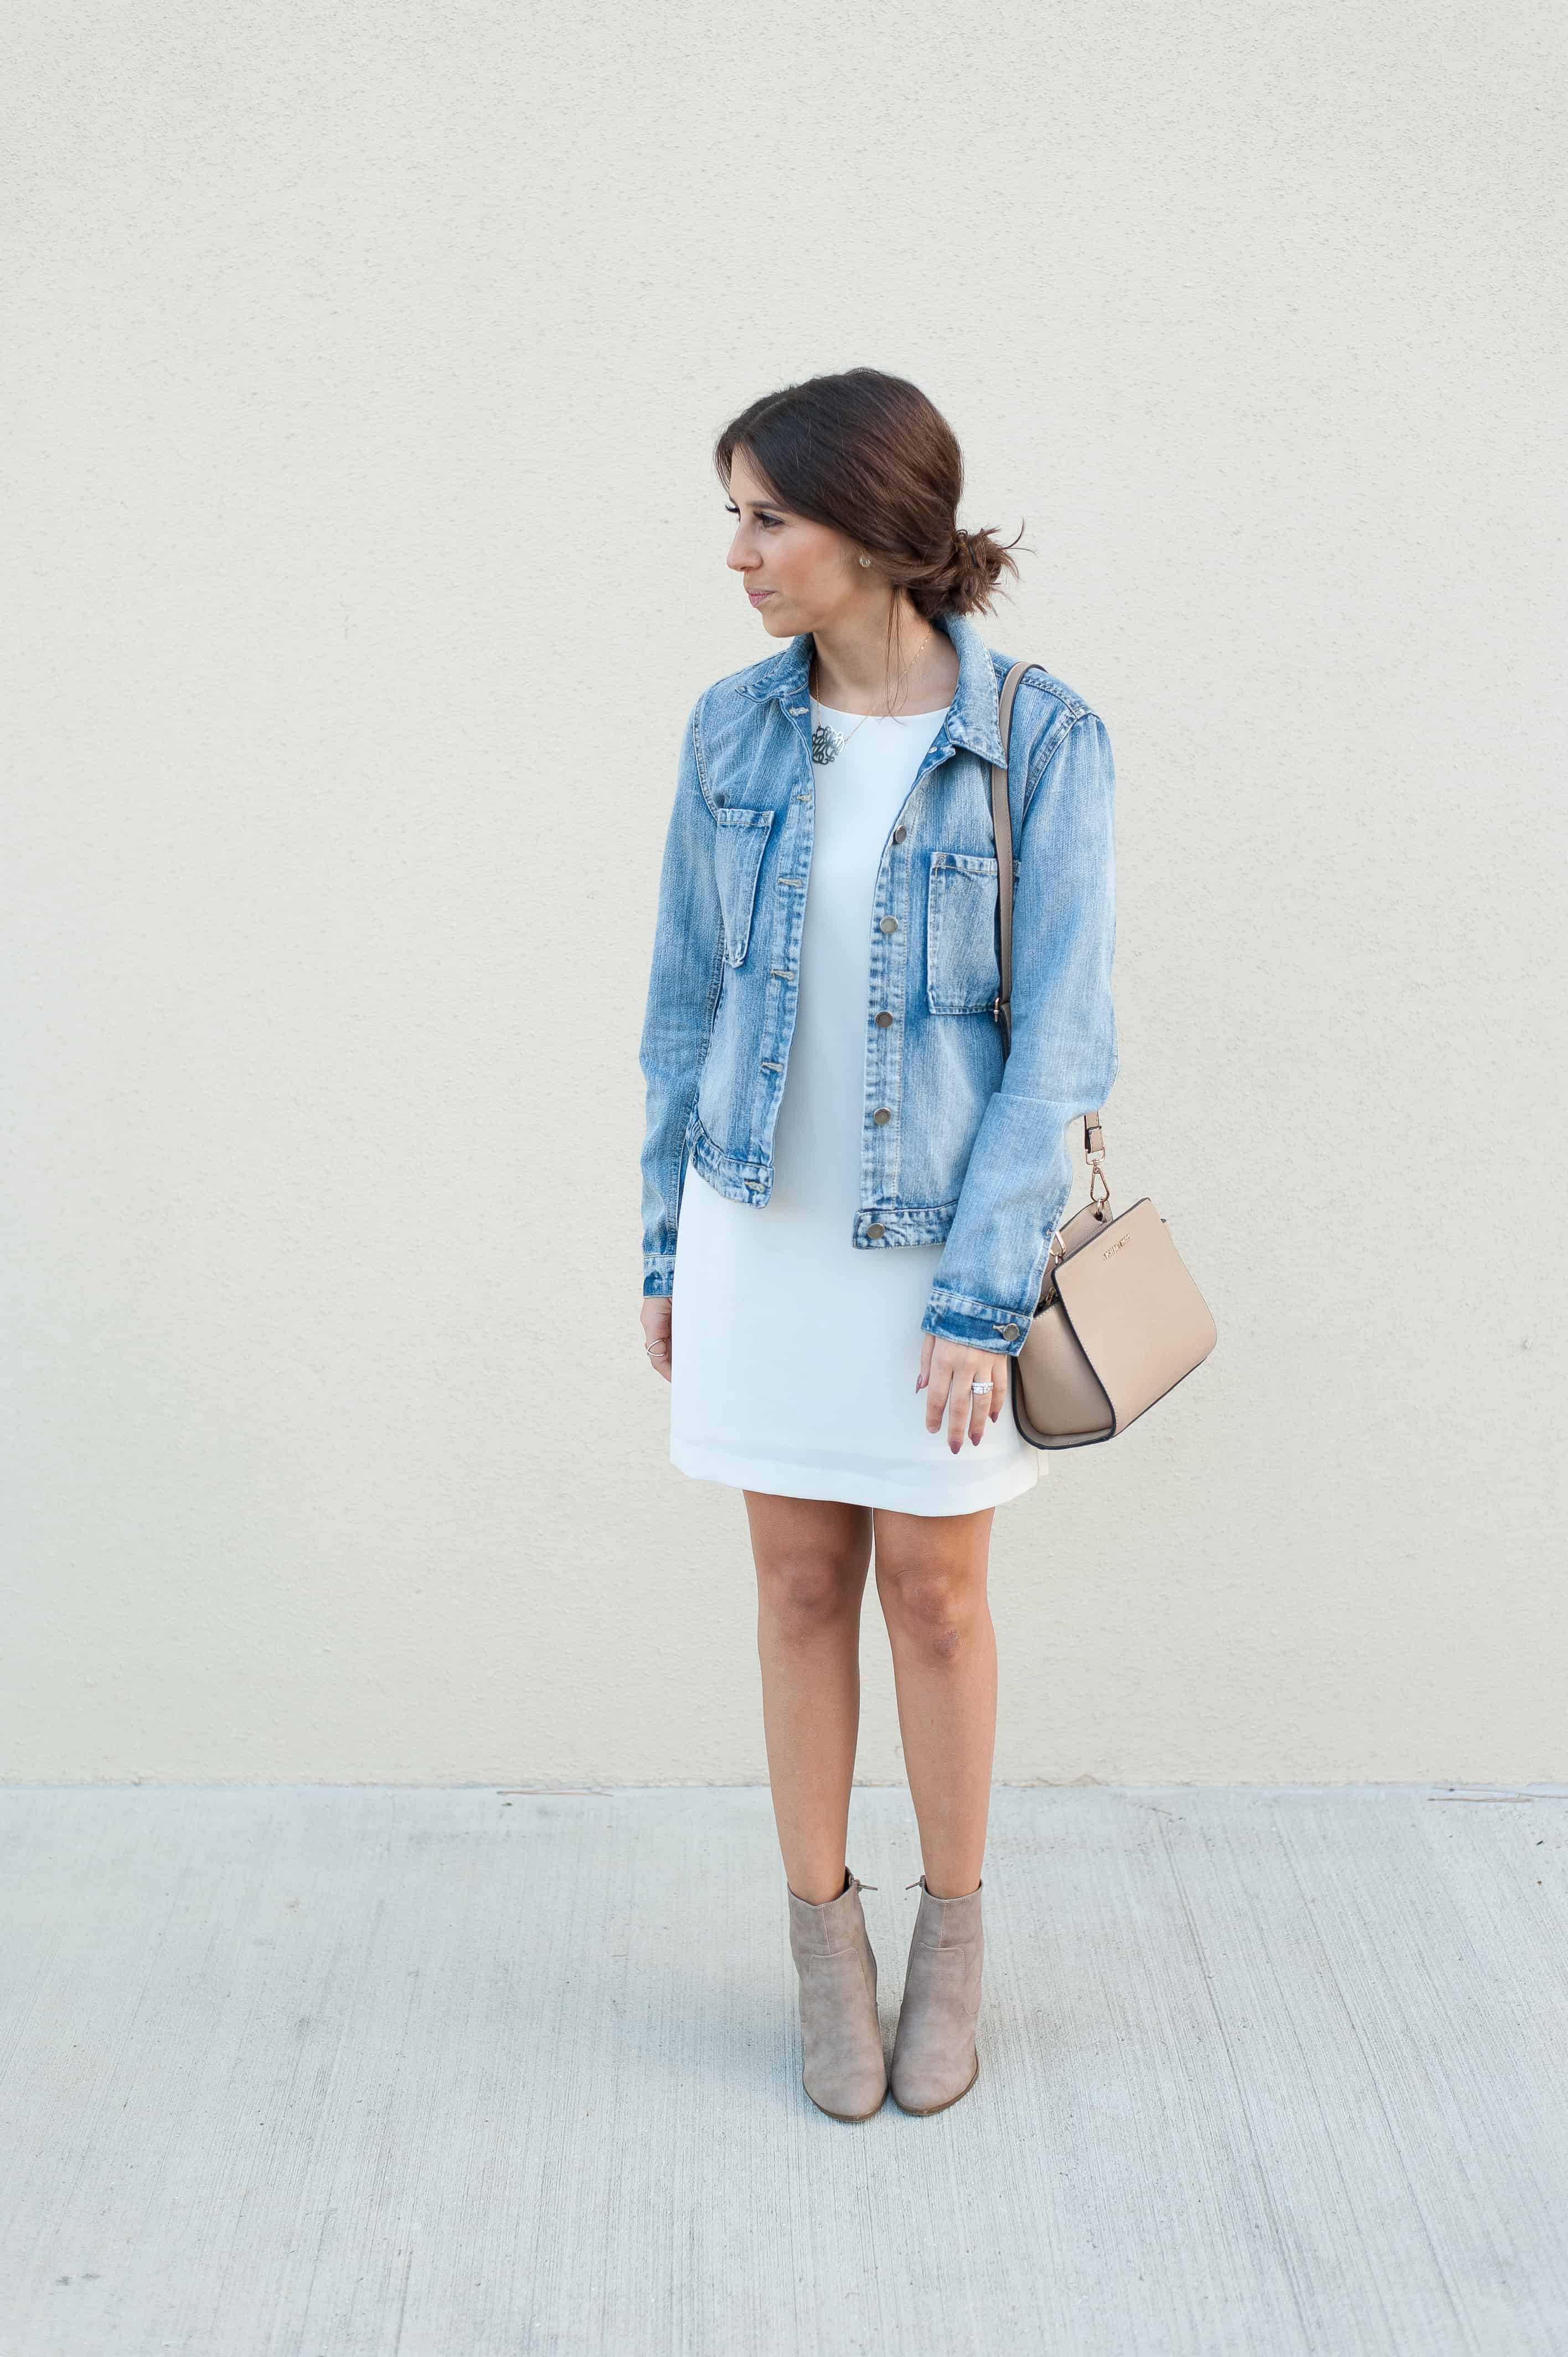 dress_up_buttercup_dede_raad_houston_fashion_style_blog (8 of 9)